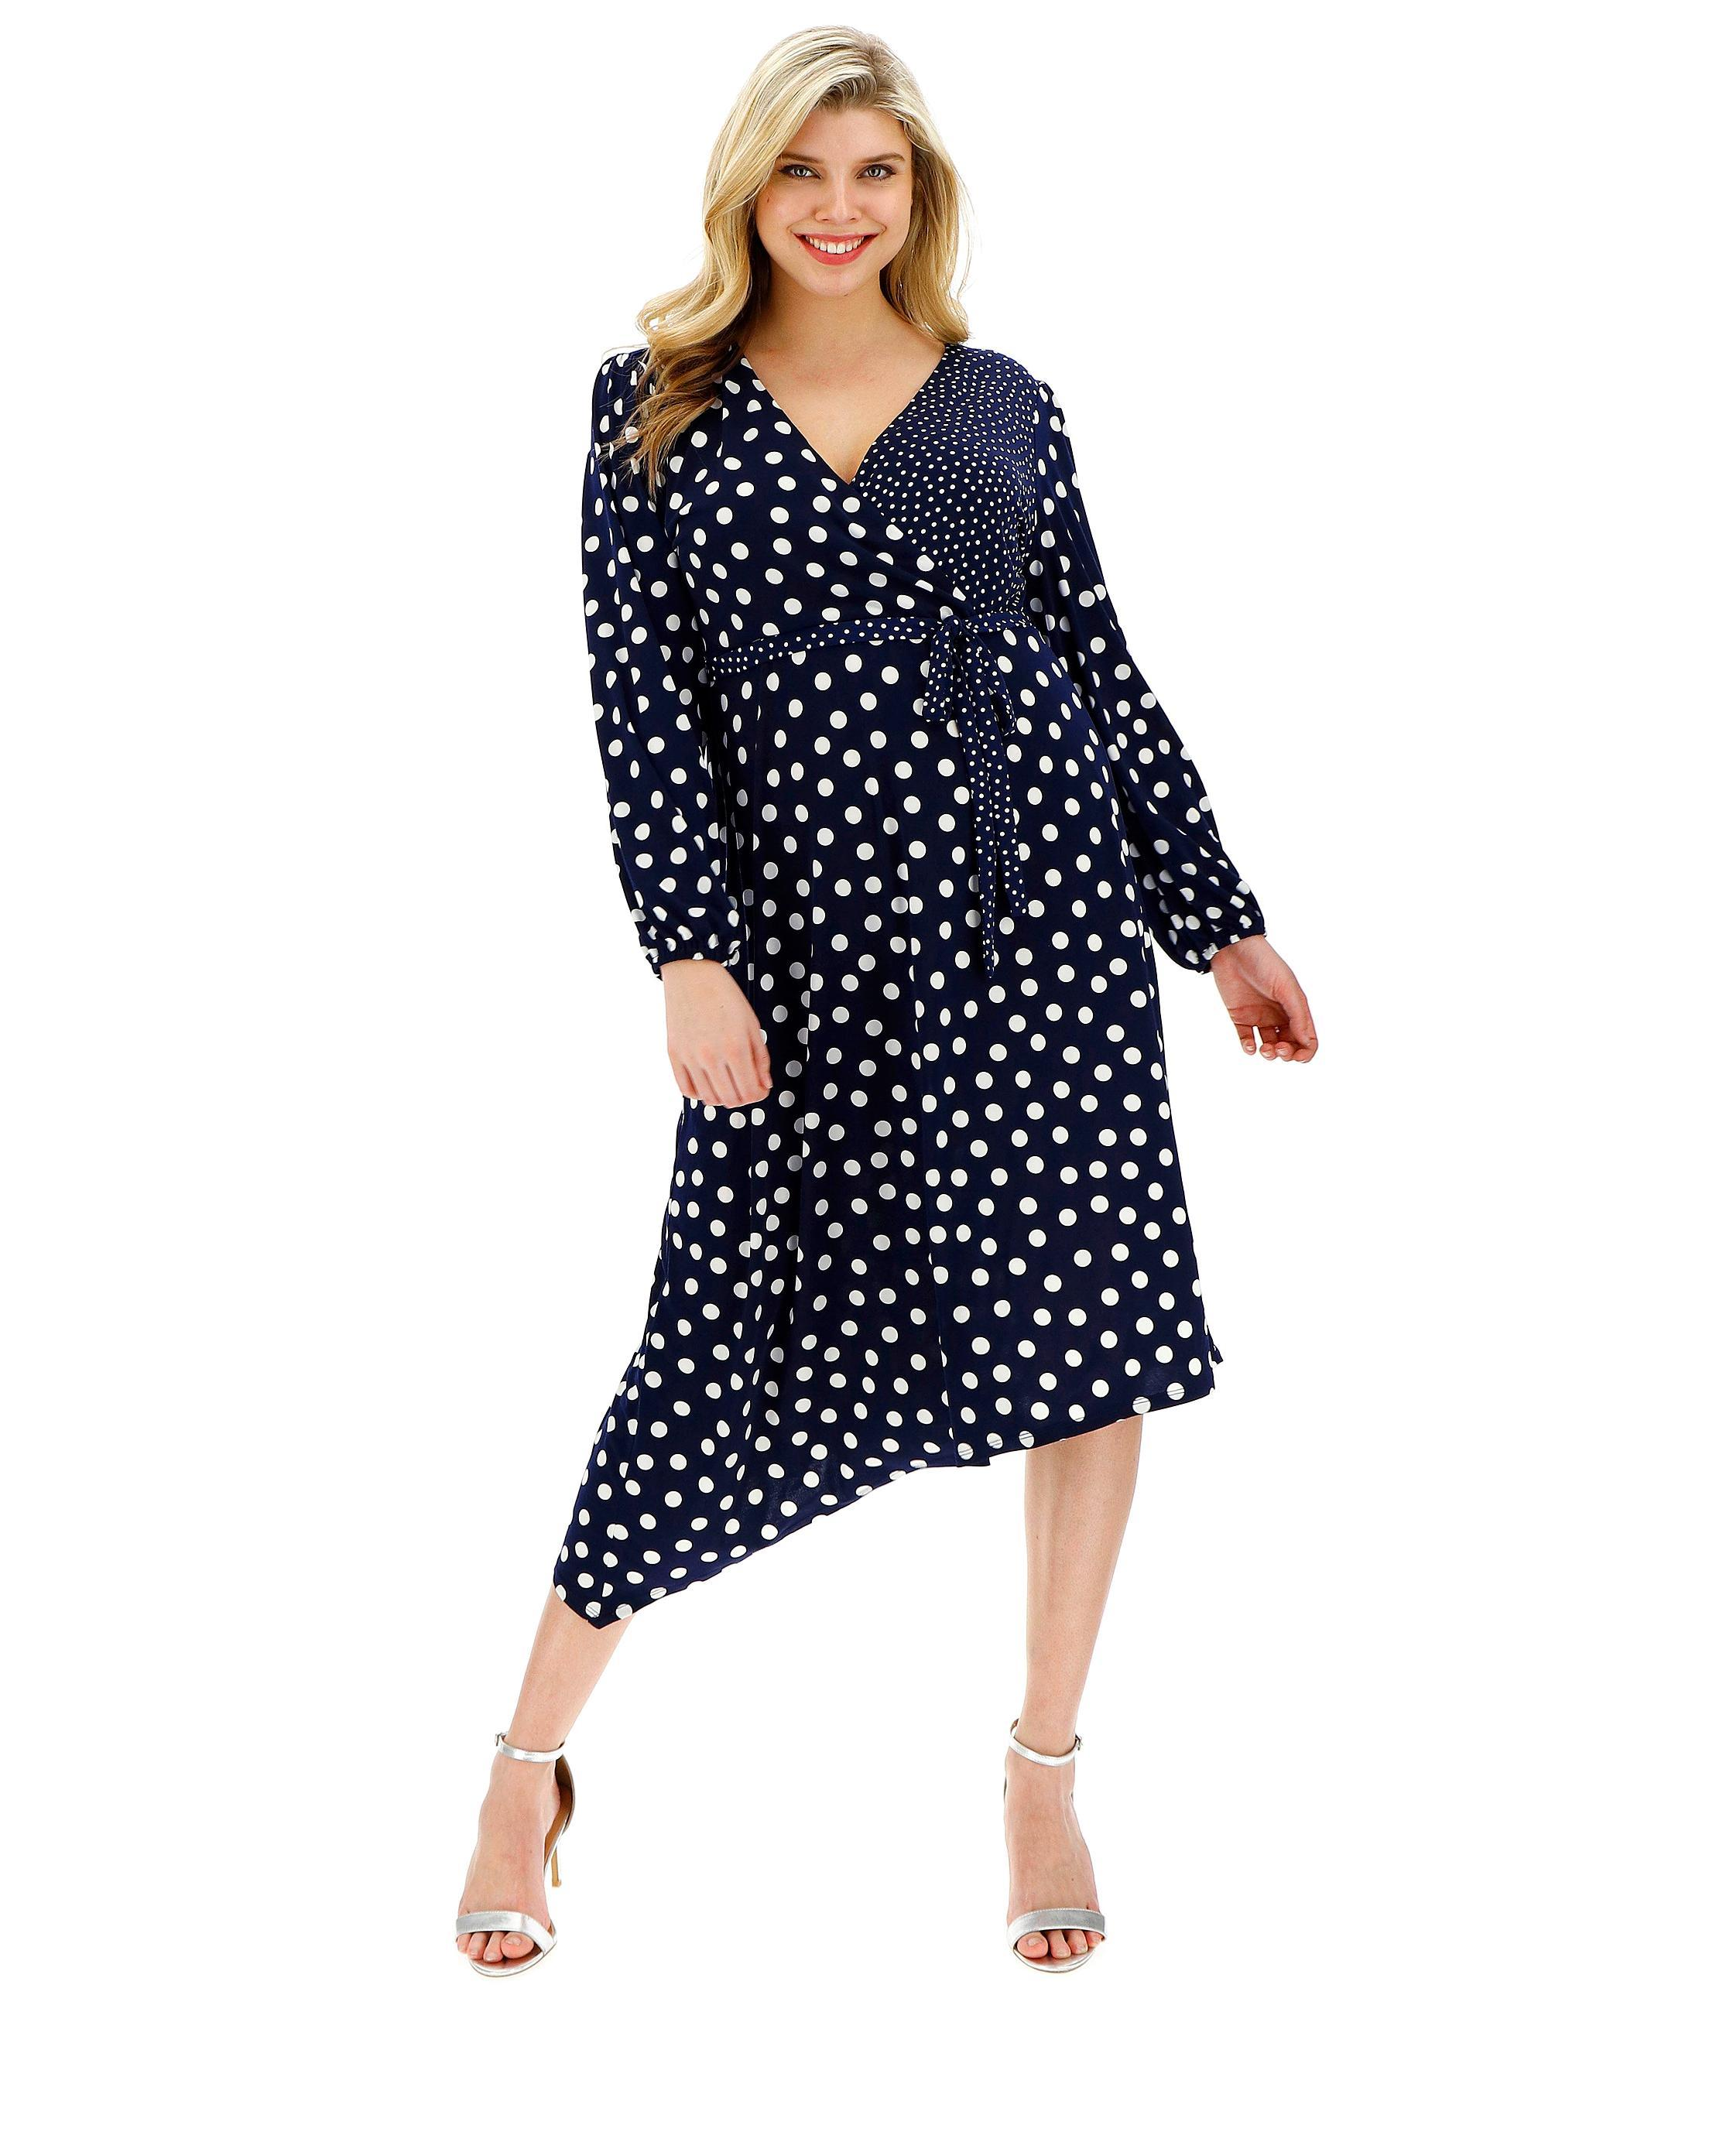 b251c75b6fa8 Lyst - Simply Be Oasis Curve Patchde Spot Midi Dress in Blue